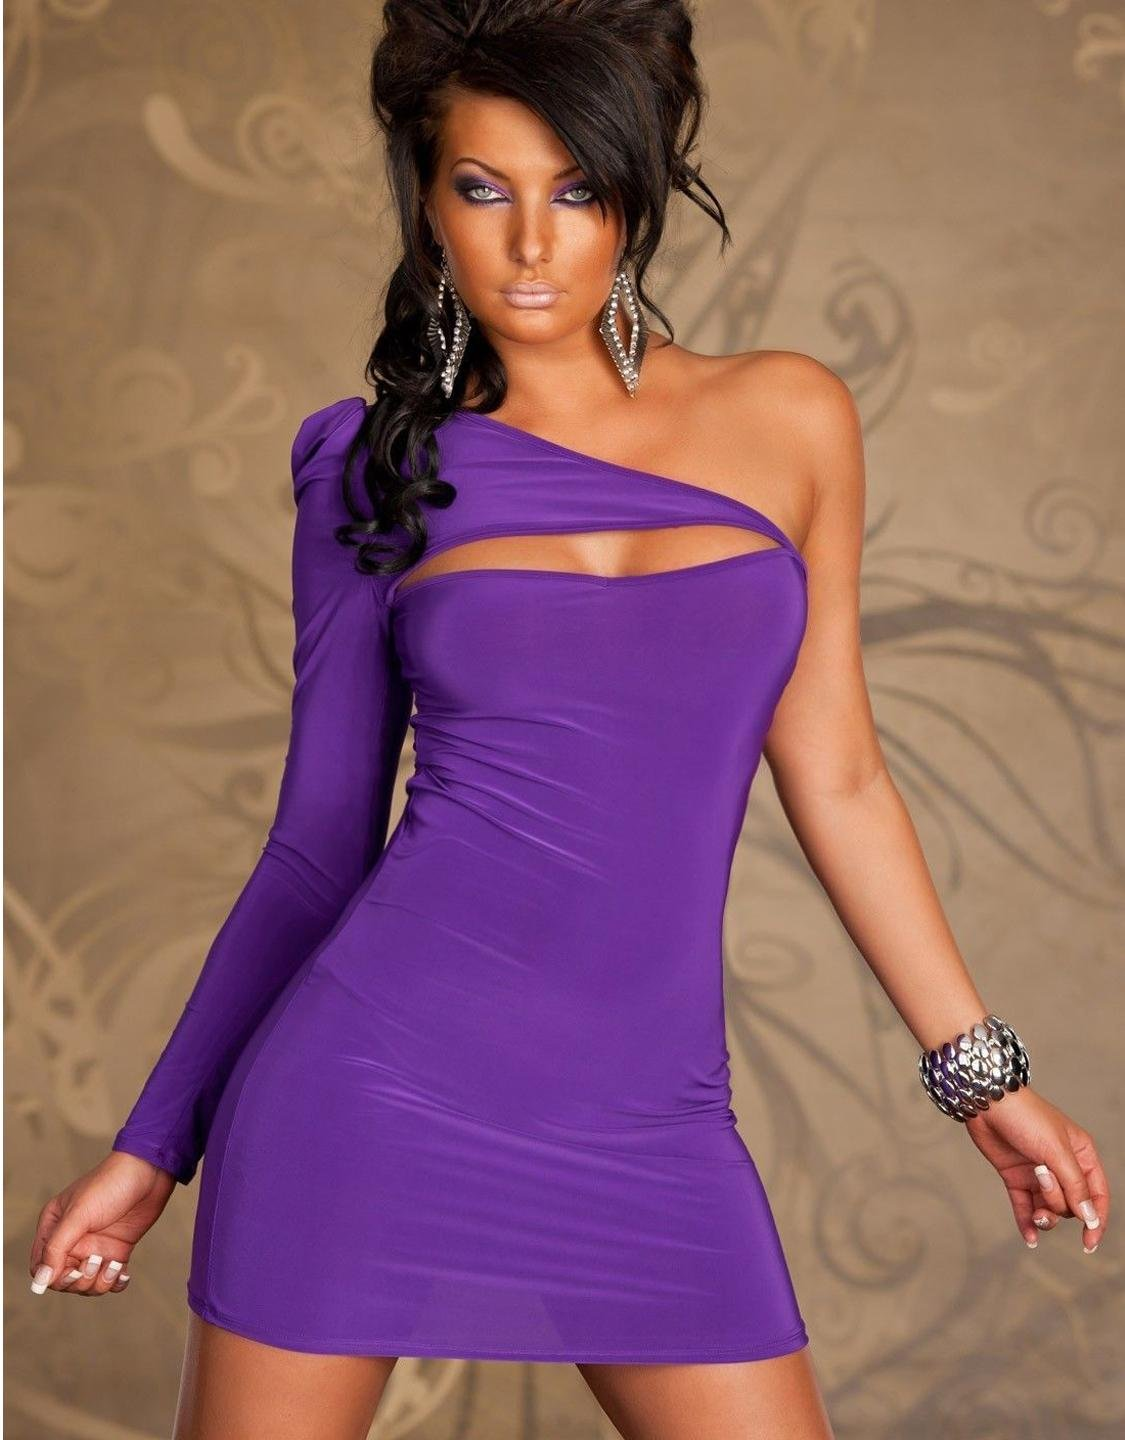 Purple Color One Shoulder Fashion Sexy One Size Bodycon Dress For Women W203121C